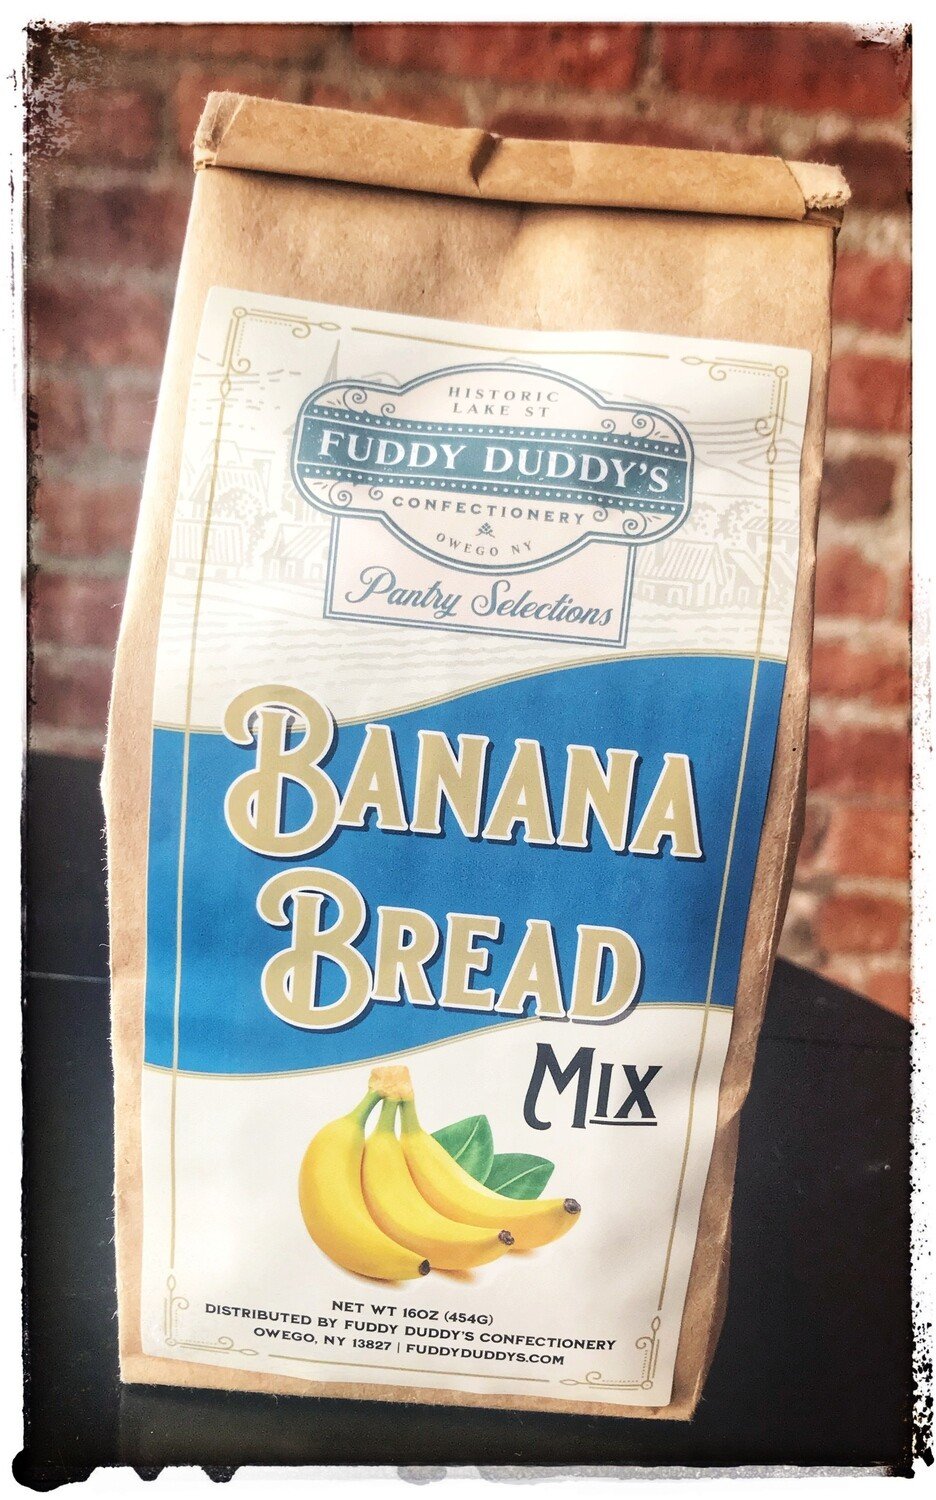 Fuddy Duddy's Banana Bread Mix